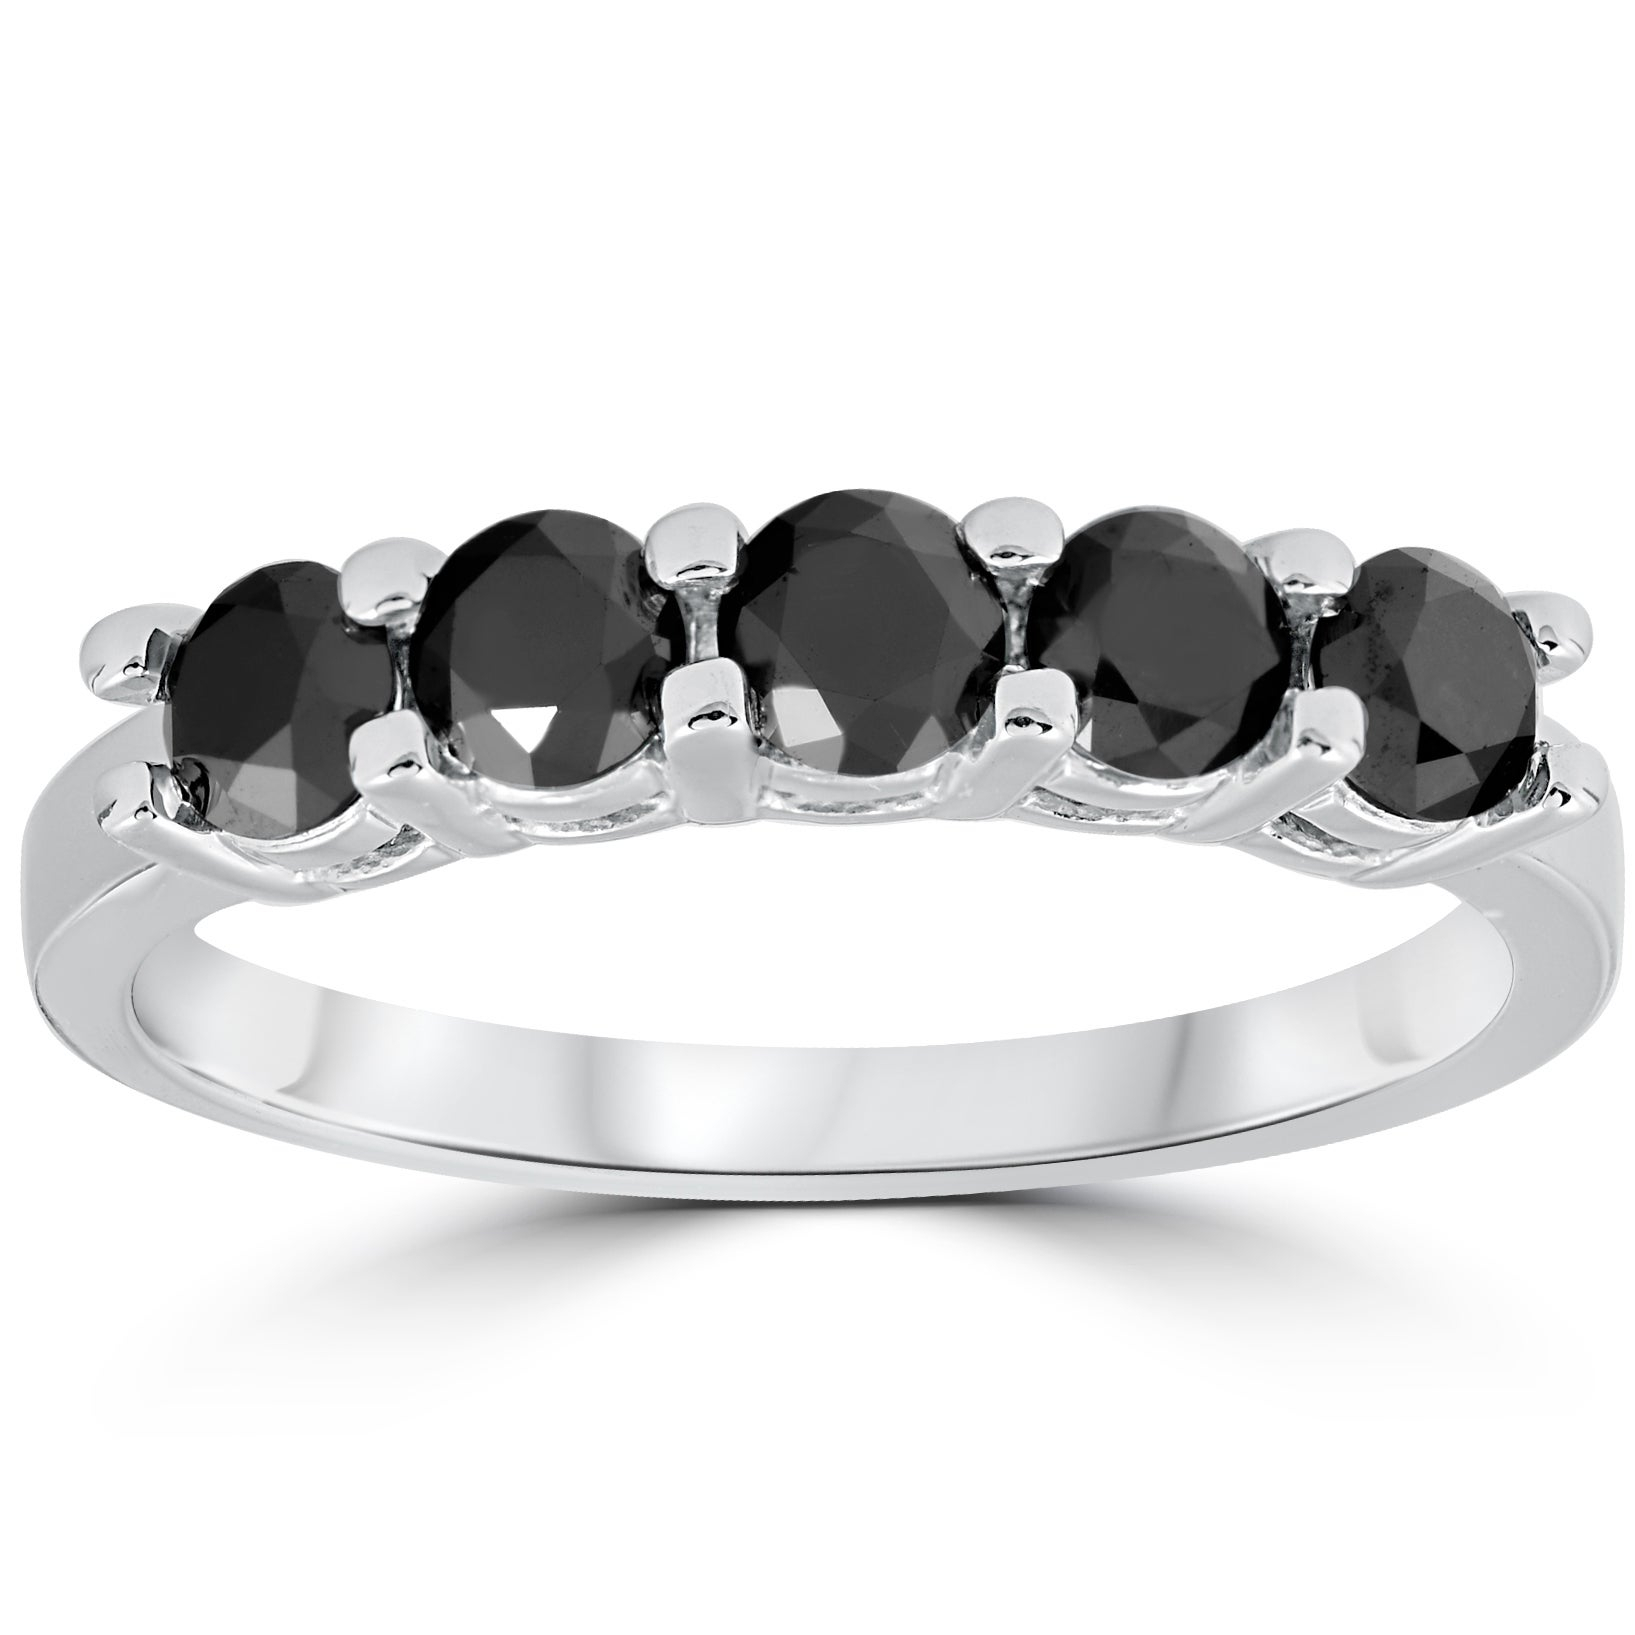 14k White Gold 1 Cttw Five Stone Black Diamond Wedding Anniversary Ring With Most Current Enhanced Black And White Diamond Anniversary Ring In White Gold (View 7 of 25)